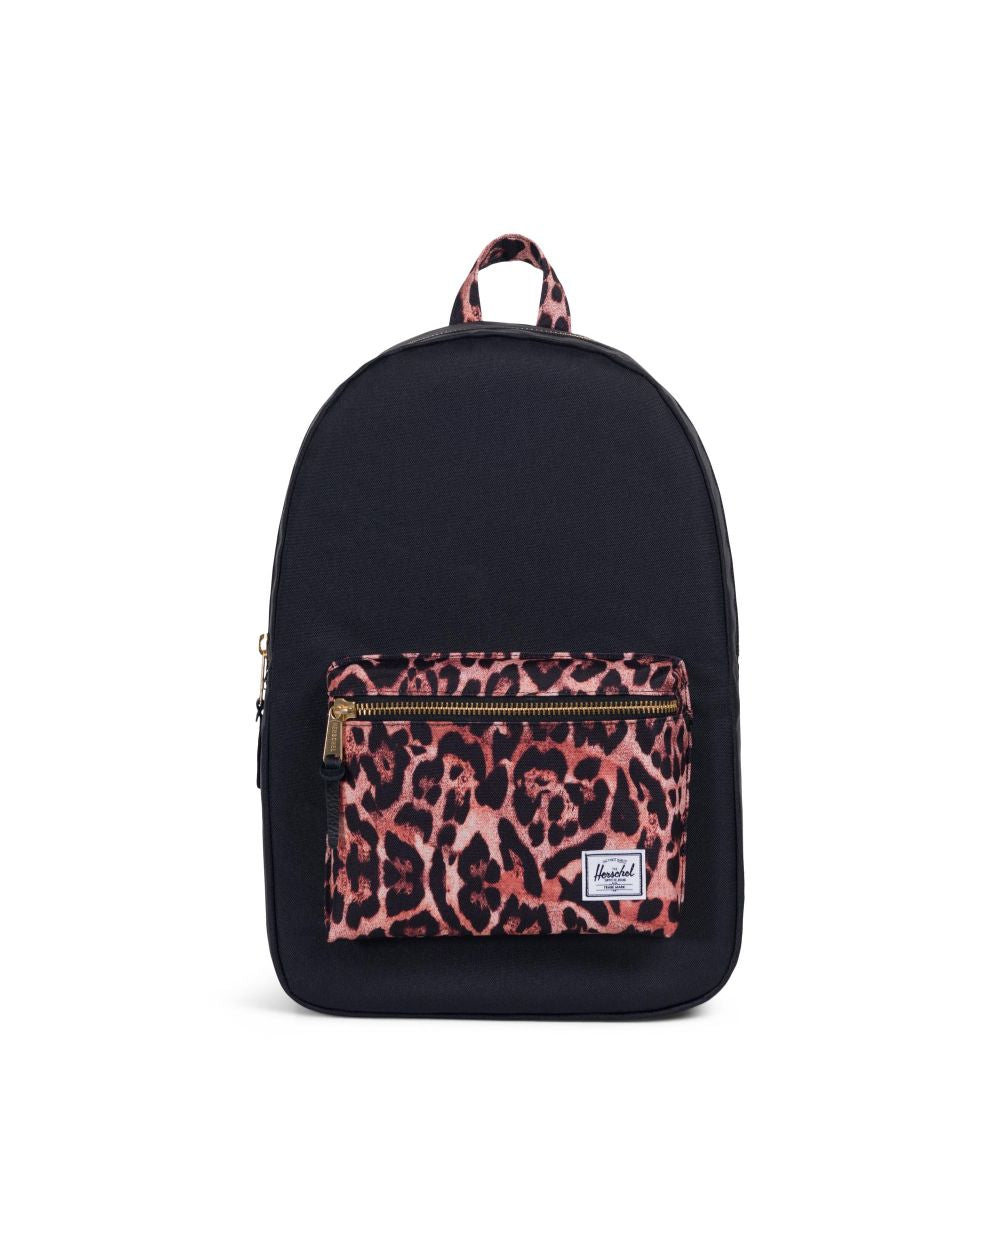 Herschel Supply Co. - Settlement Backpack, Black/Desert Cheetah